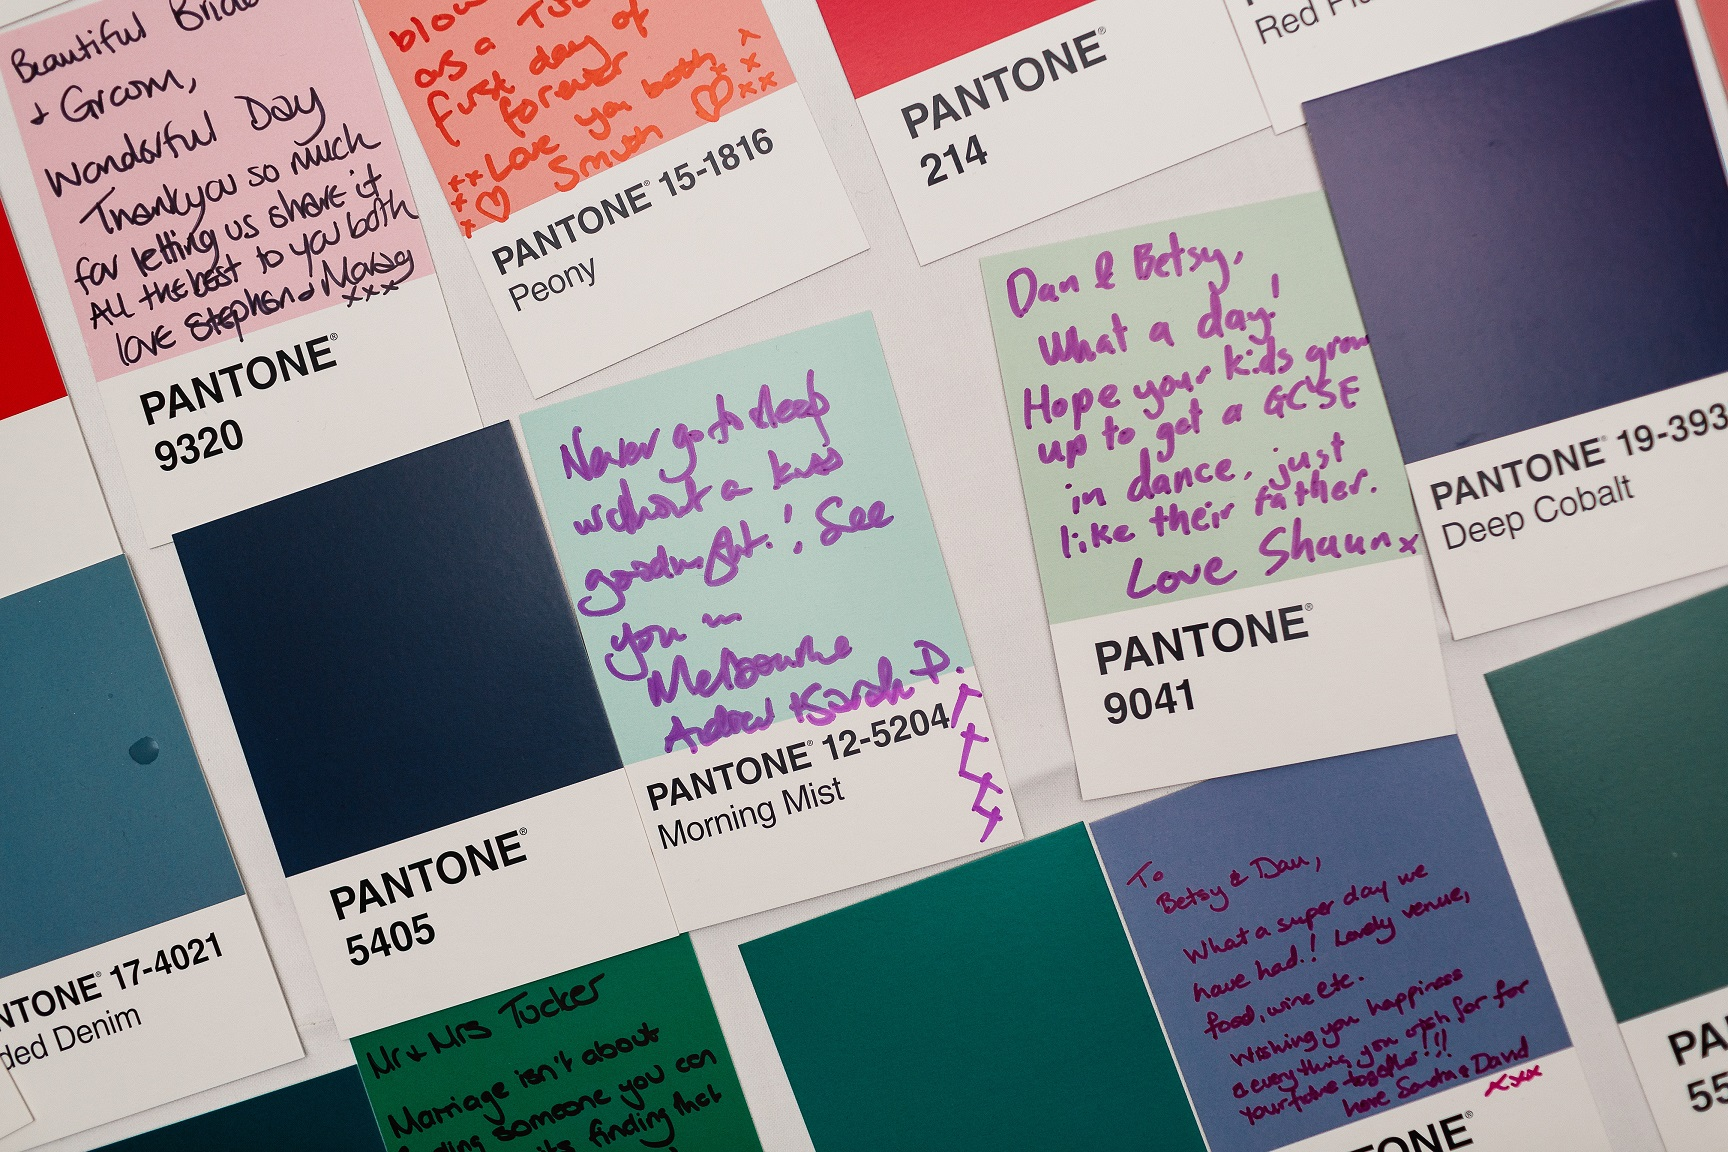 Pantone Guest Book at The Normans Photo by www.pauljosephphotography.co.uk